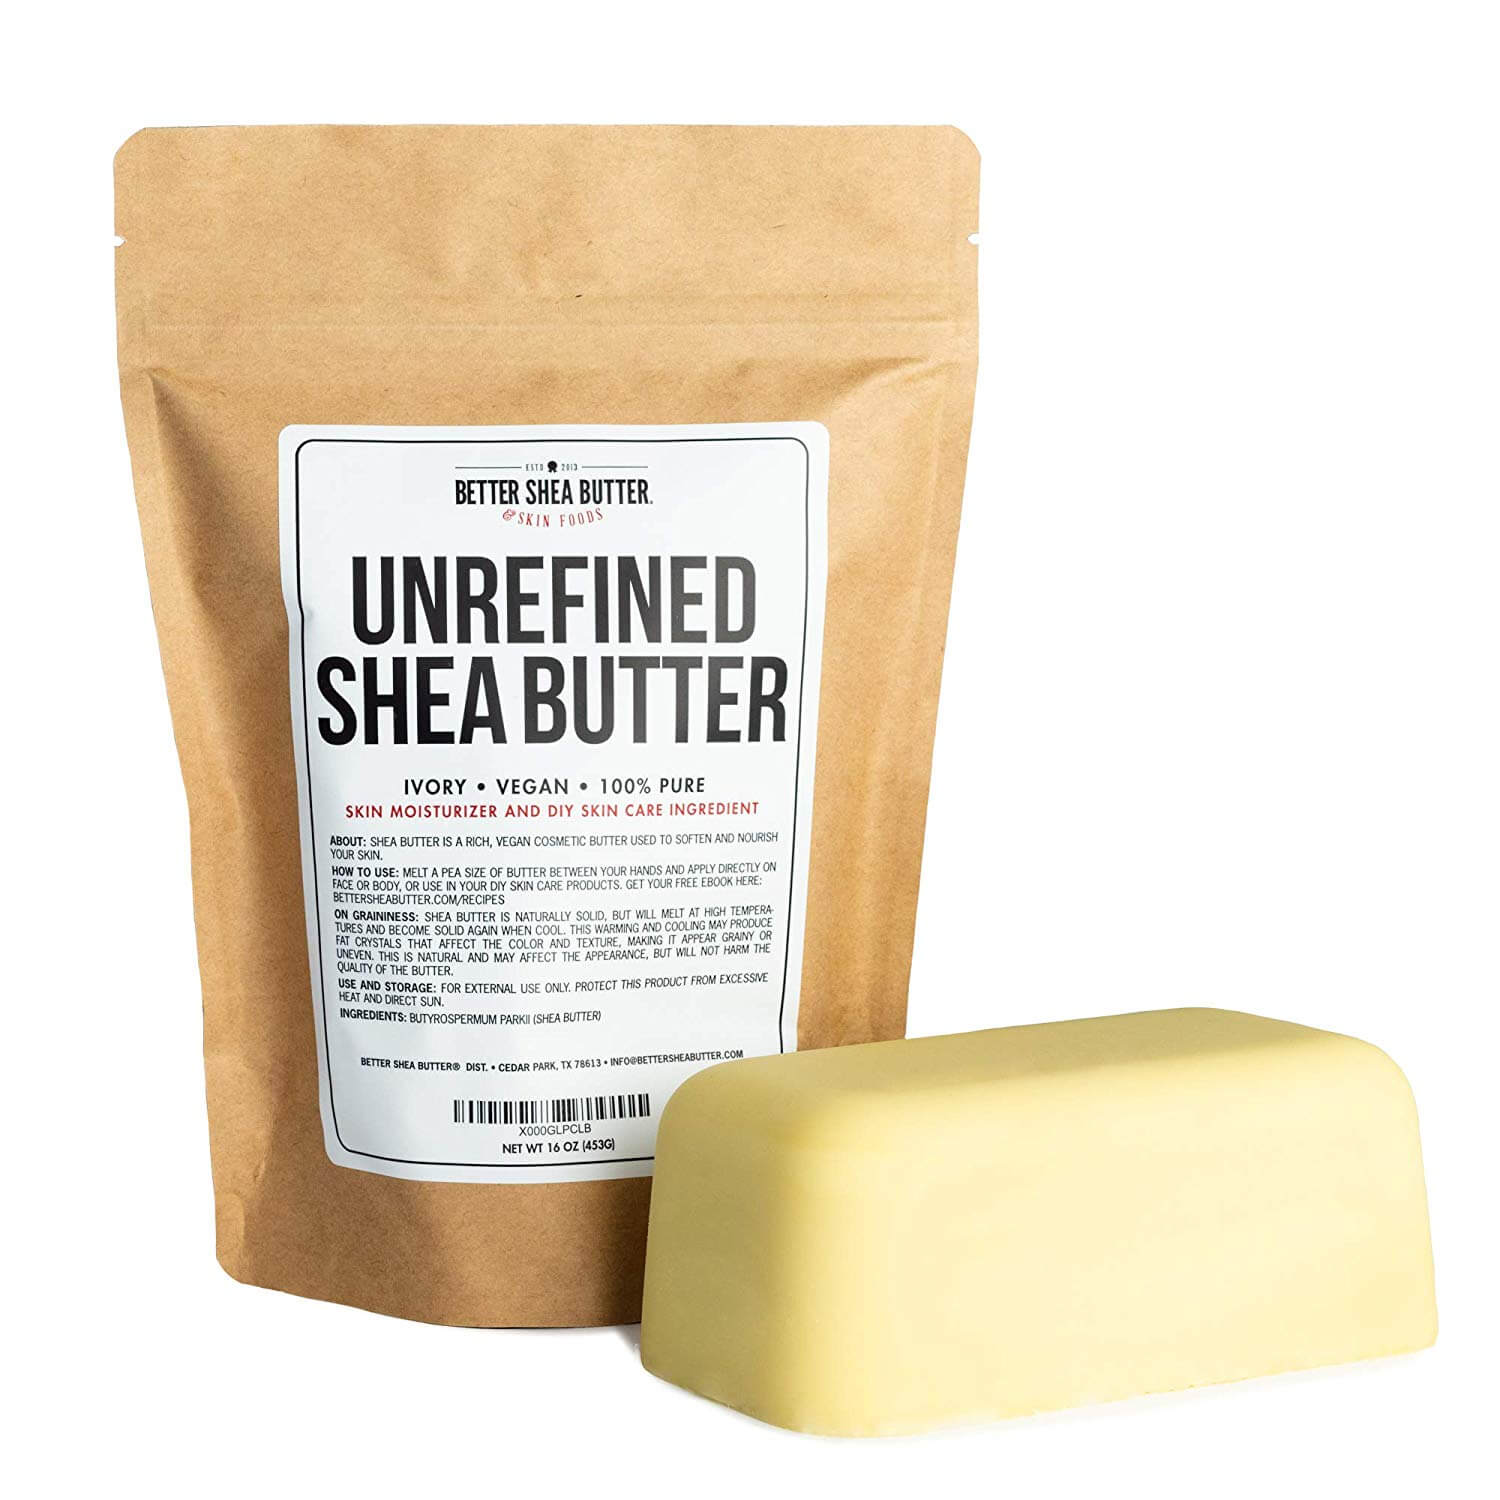 A bar of shea butter - a natural hard oil to make your hair grow faster when used regularly